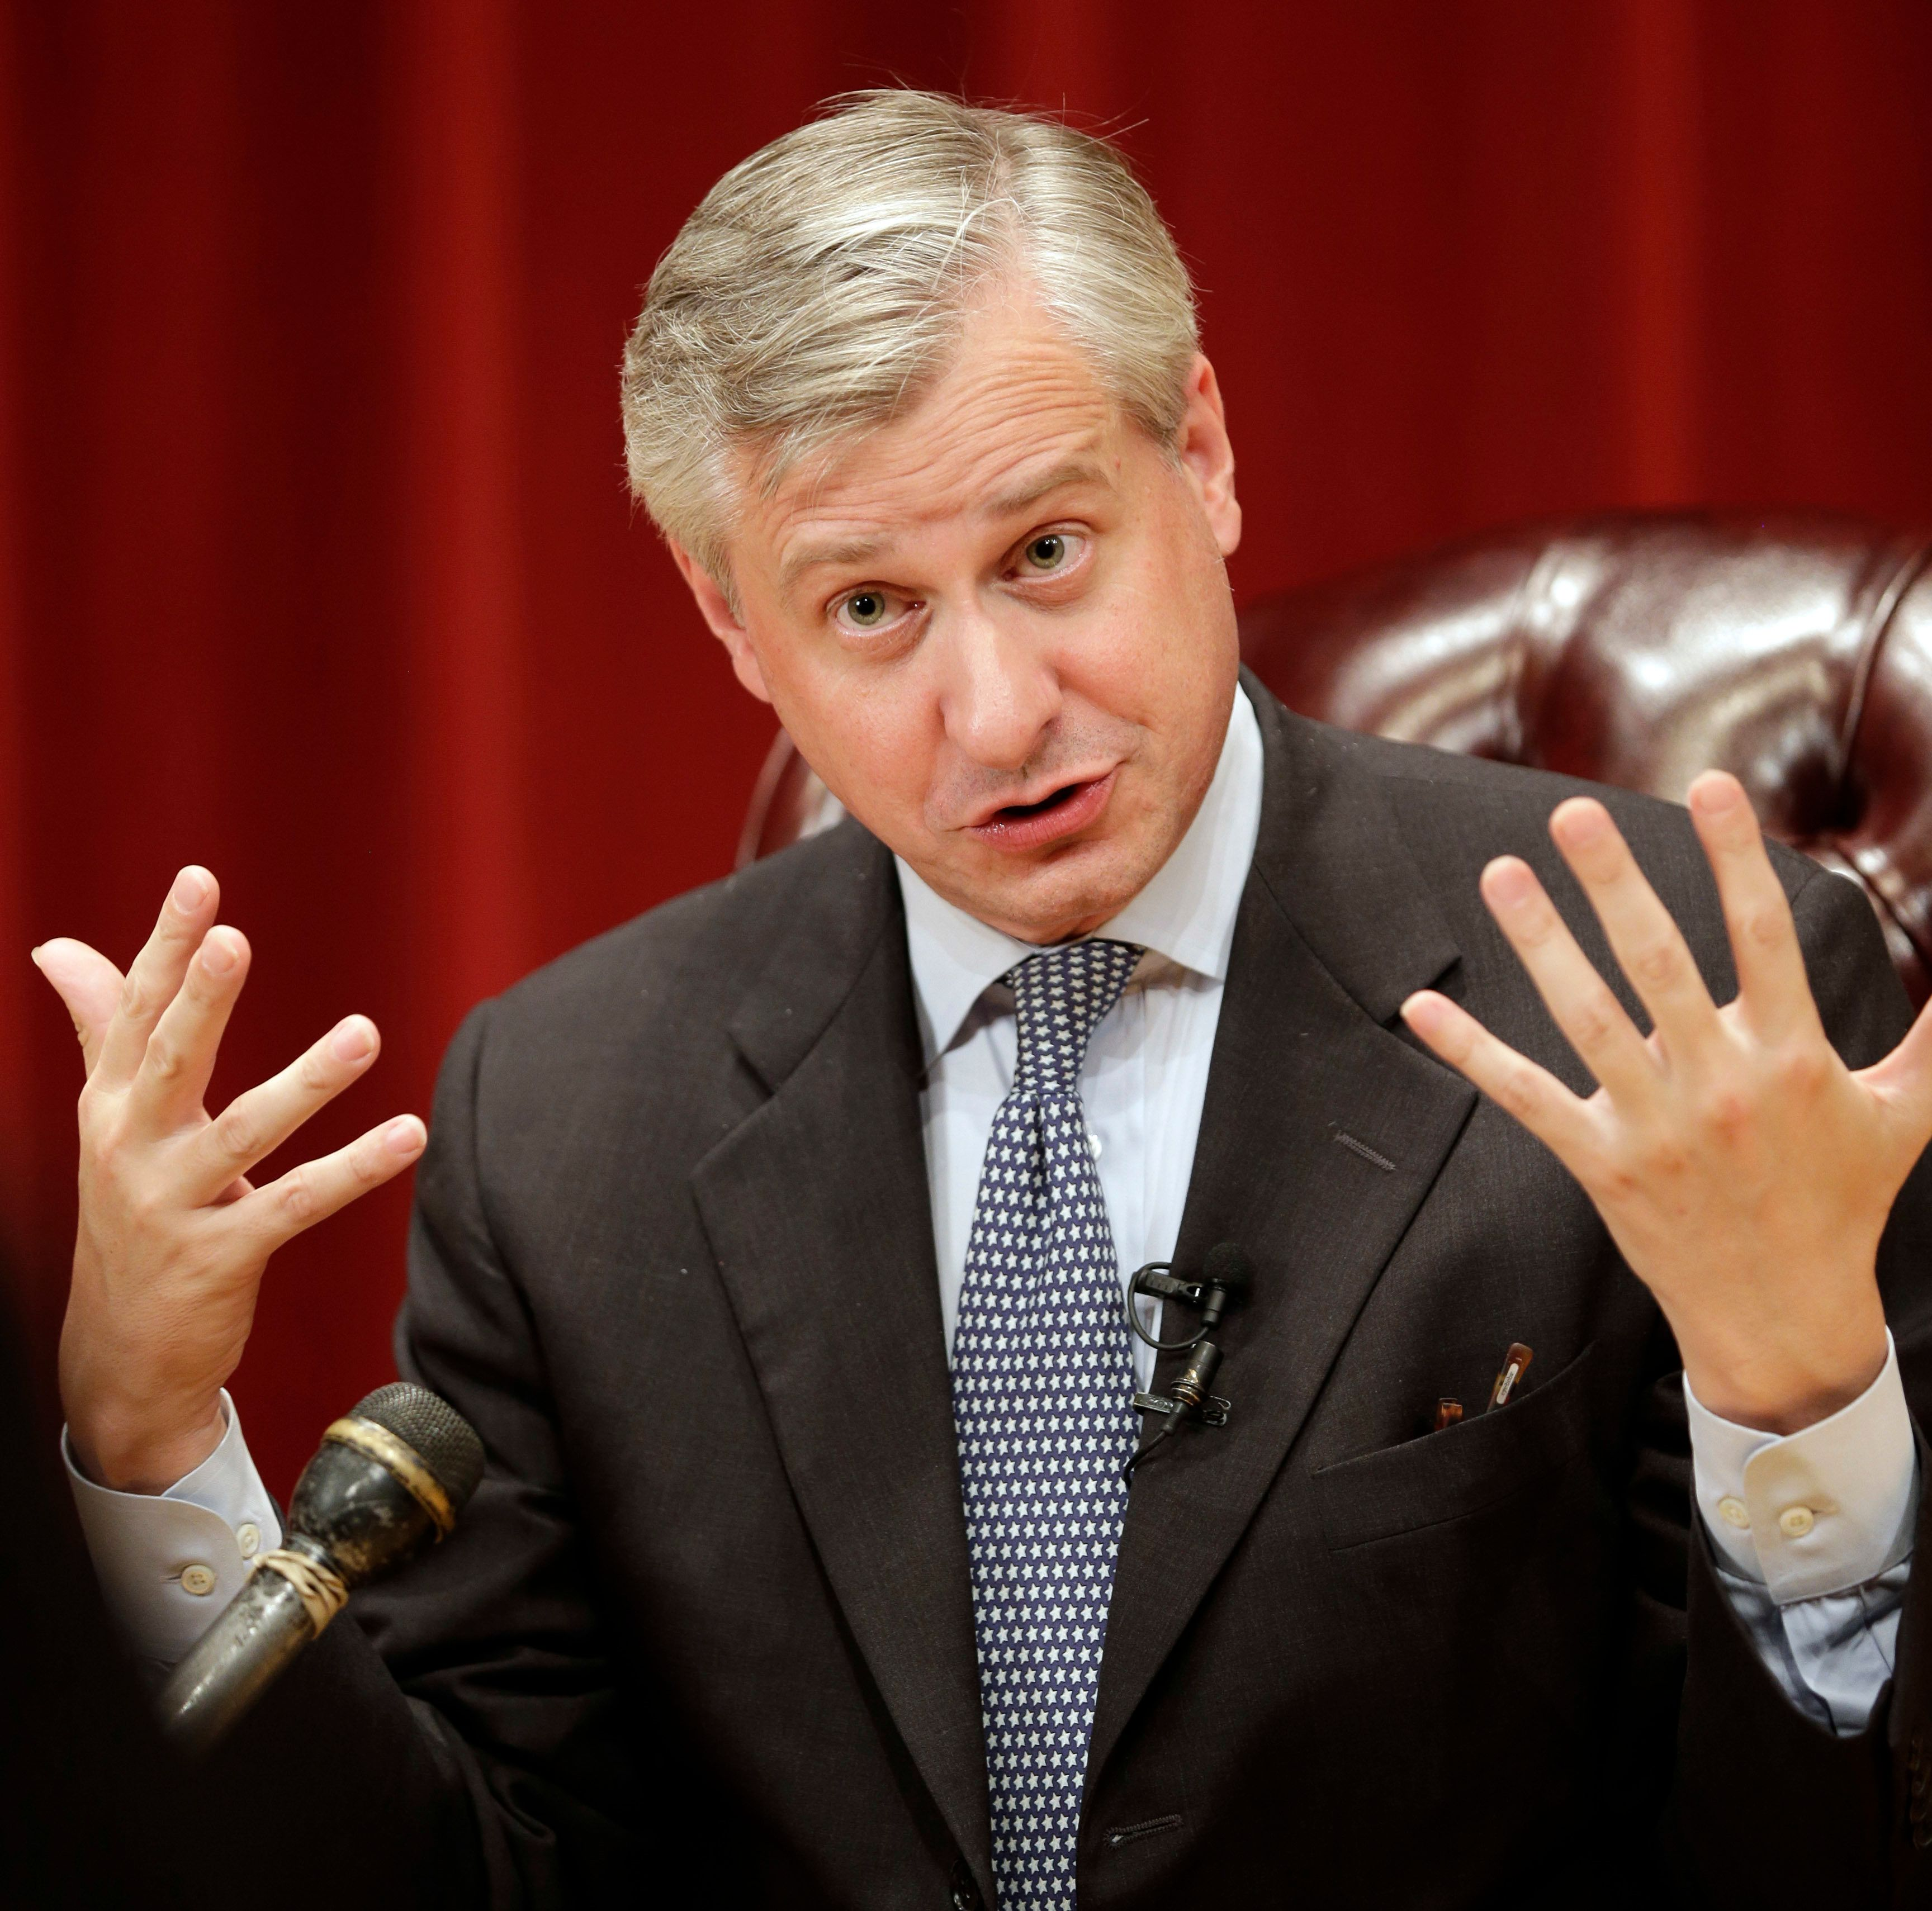 """Author Jon Meacham answers a question from reporters before an event at Texas A&M University to launch his latest book """"Destiny and Power: The American Odyssey of George Herbert Walker Bush"""" Monday, Nov. 9, 2015, in College Station, Texas. The book will be released nationwide Tuesday. (AP Photo/David J. Phillip)"""